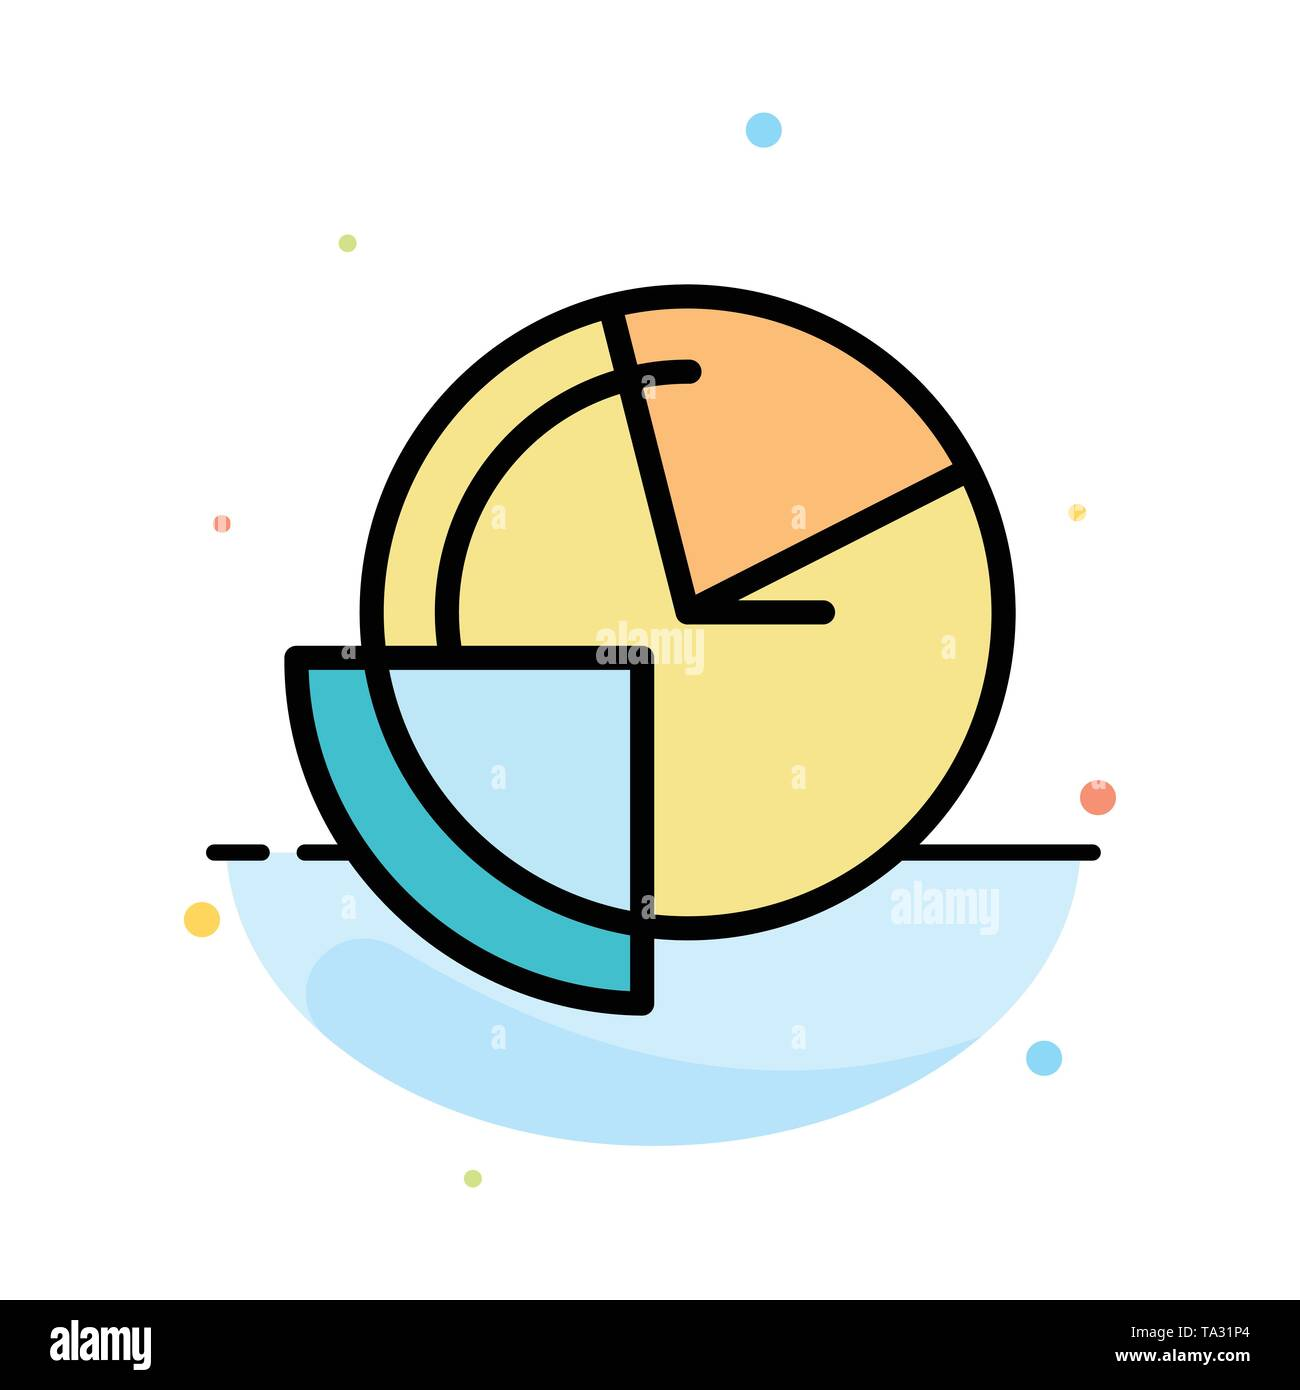 analysis, chart, data, diagram, monitoring abstract flat color icon template